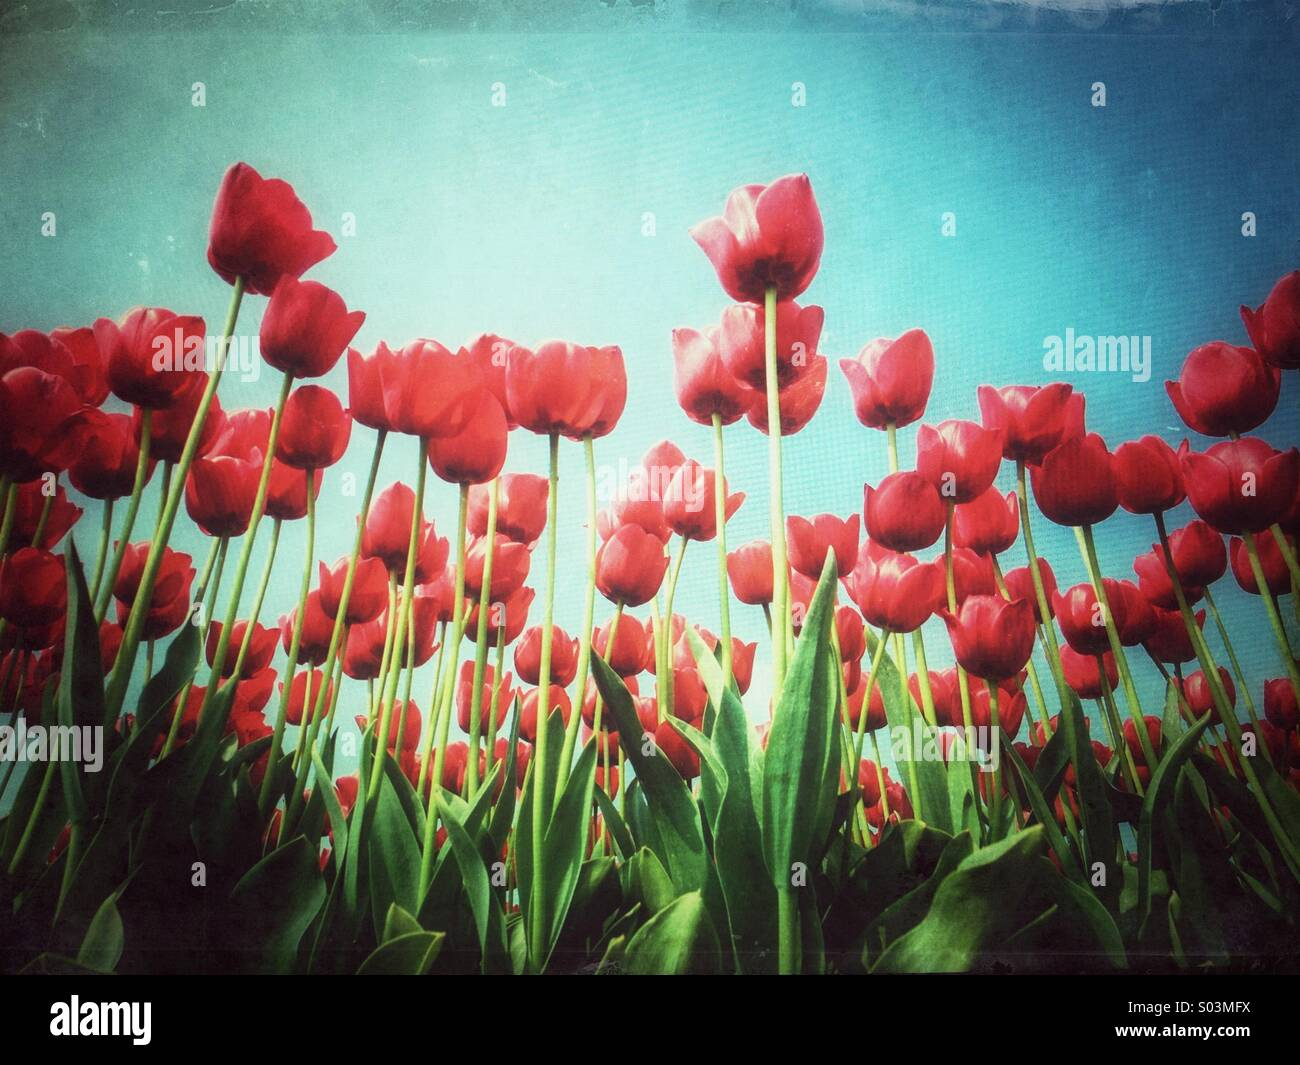 Red tulips in field in spring, Lisse, South Holland, Netherlands Stock Photo